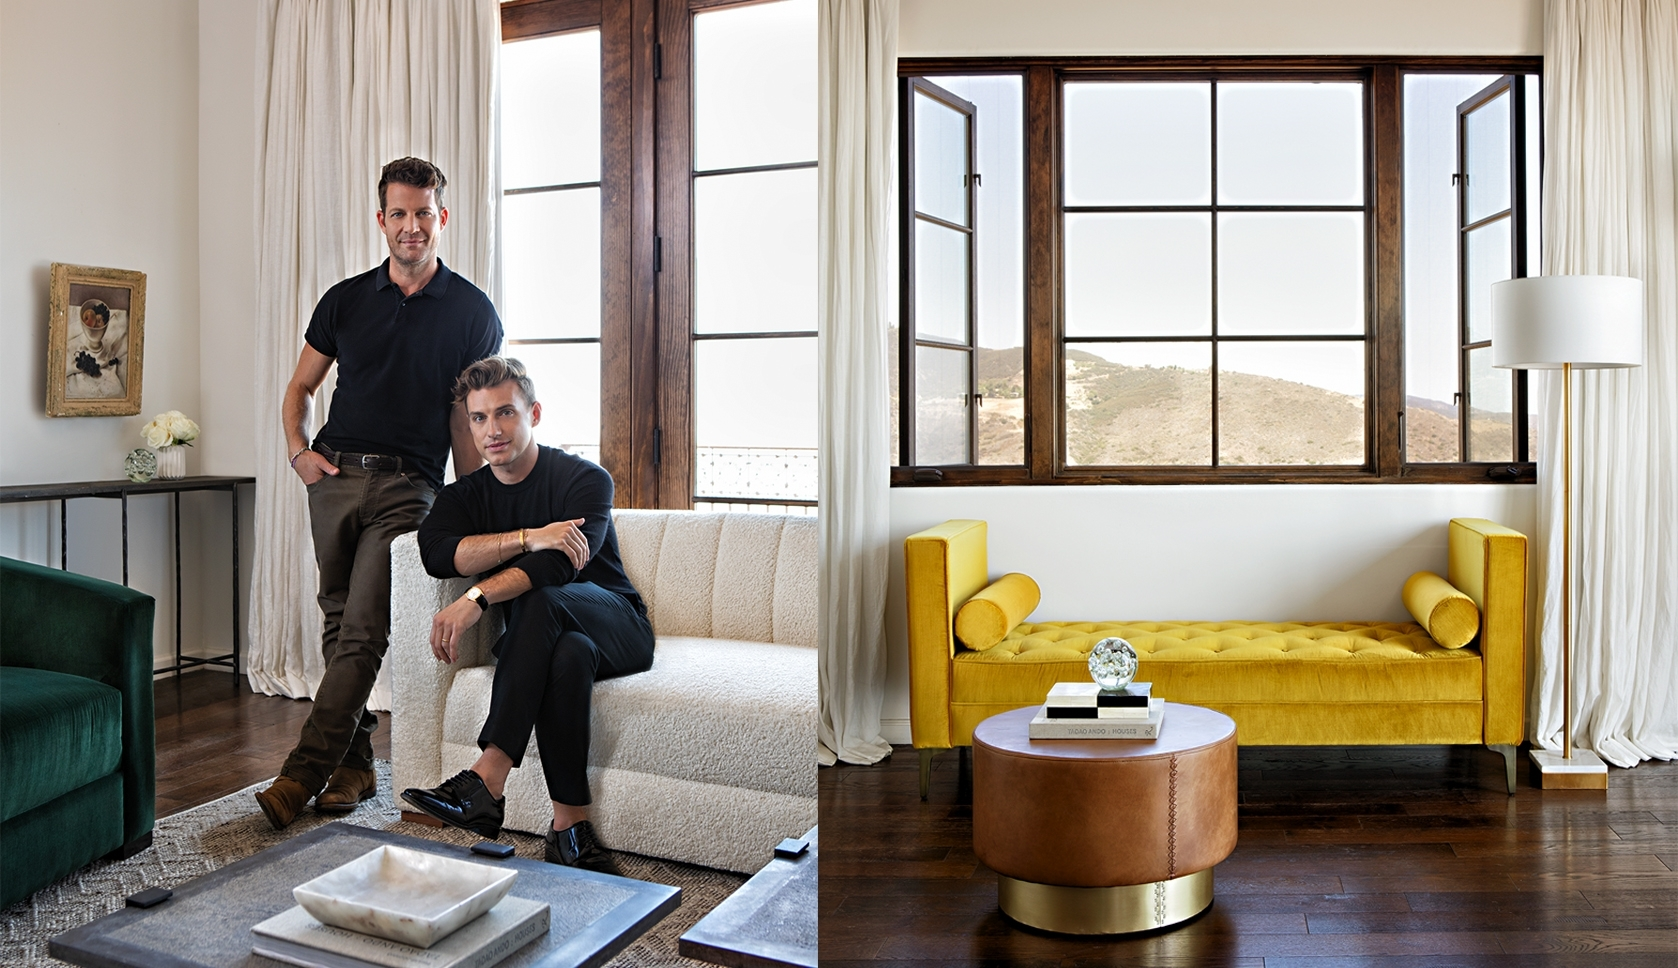 Nate Berkus & Jeremiah Brent's Newest Affordable Collection | Rue Within Soane 3 Piece Sectionals By Nate Berkus And Jeremiah Brent (View 16 of 25)